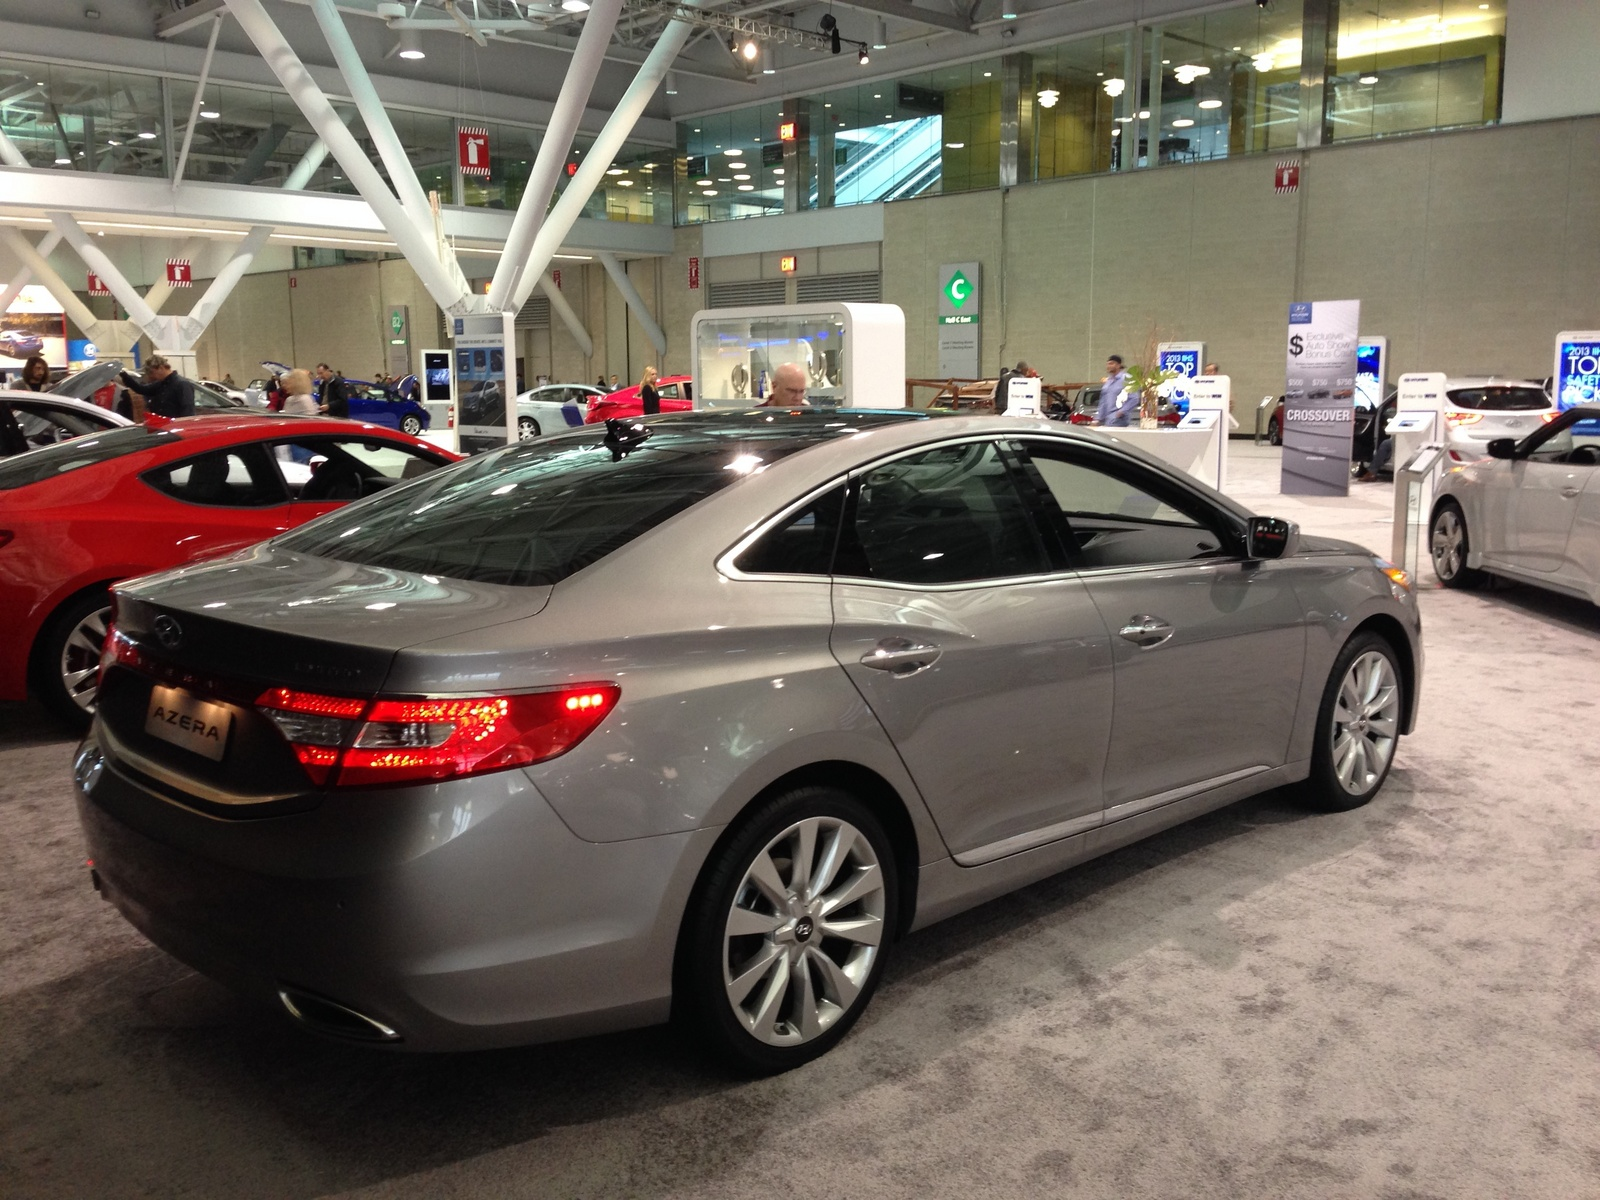 Photo from the 2014 New England International Auto Show